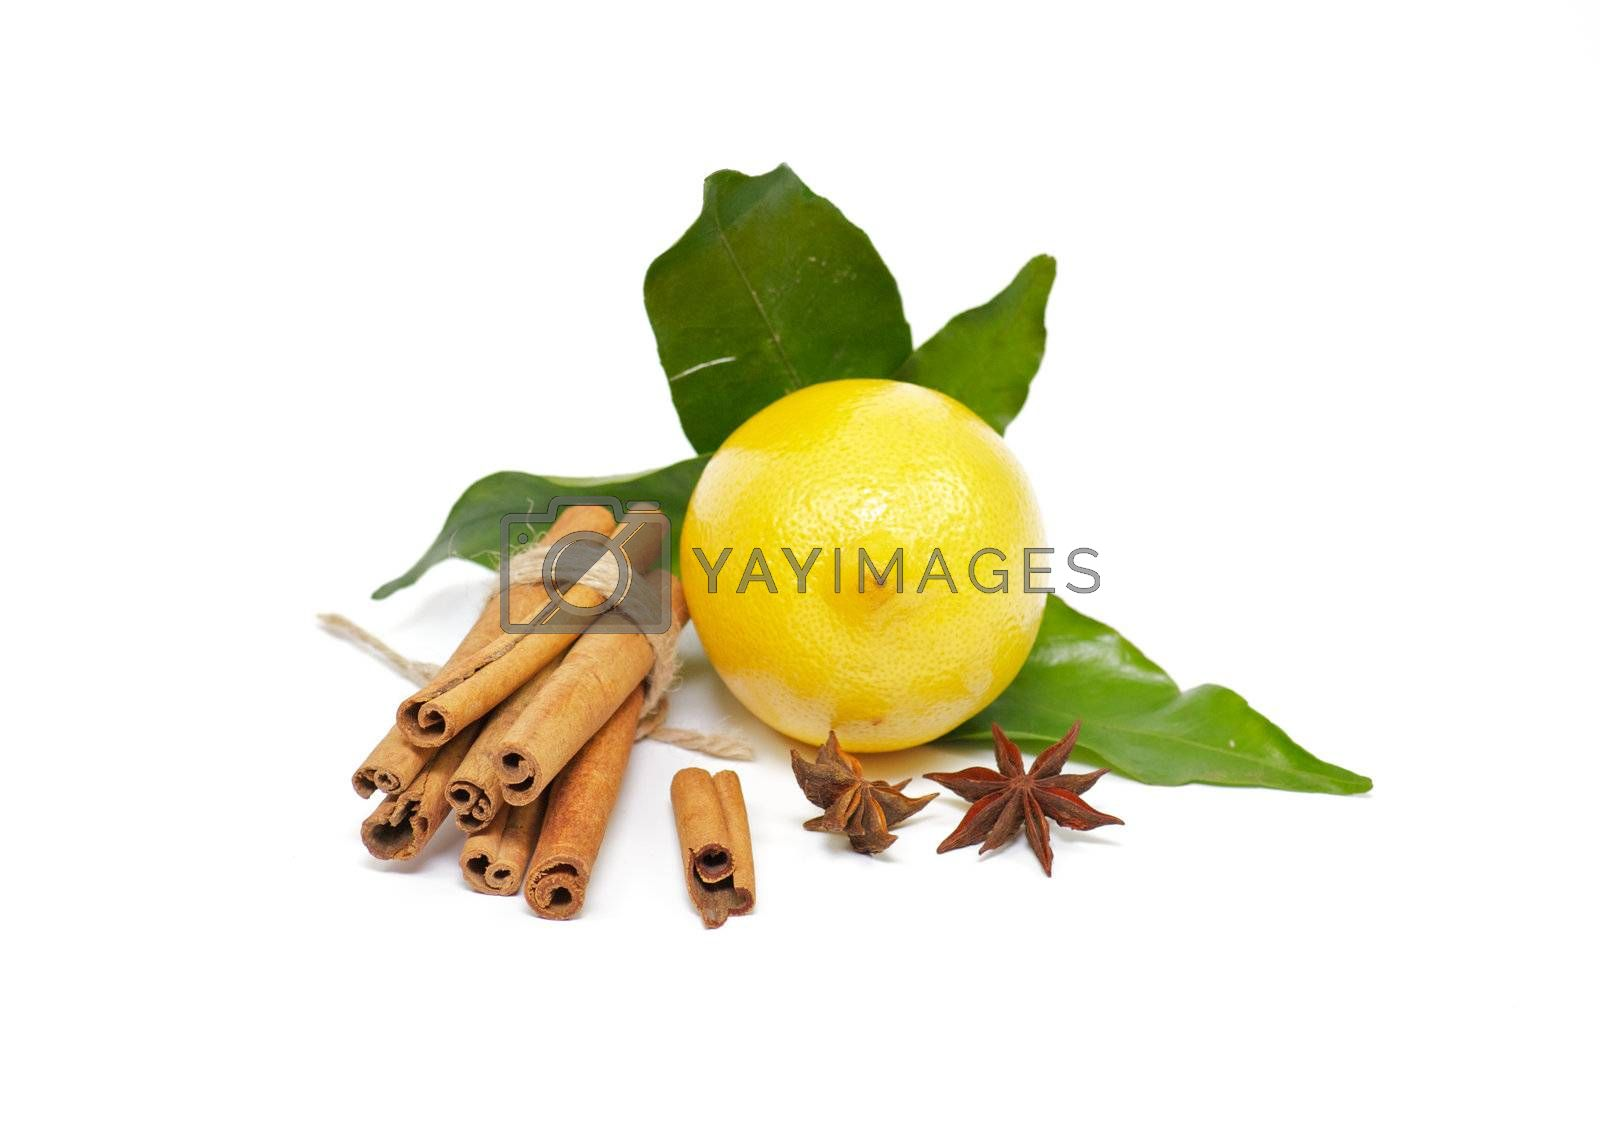 Lemon with cinnamon and anise